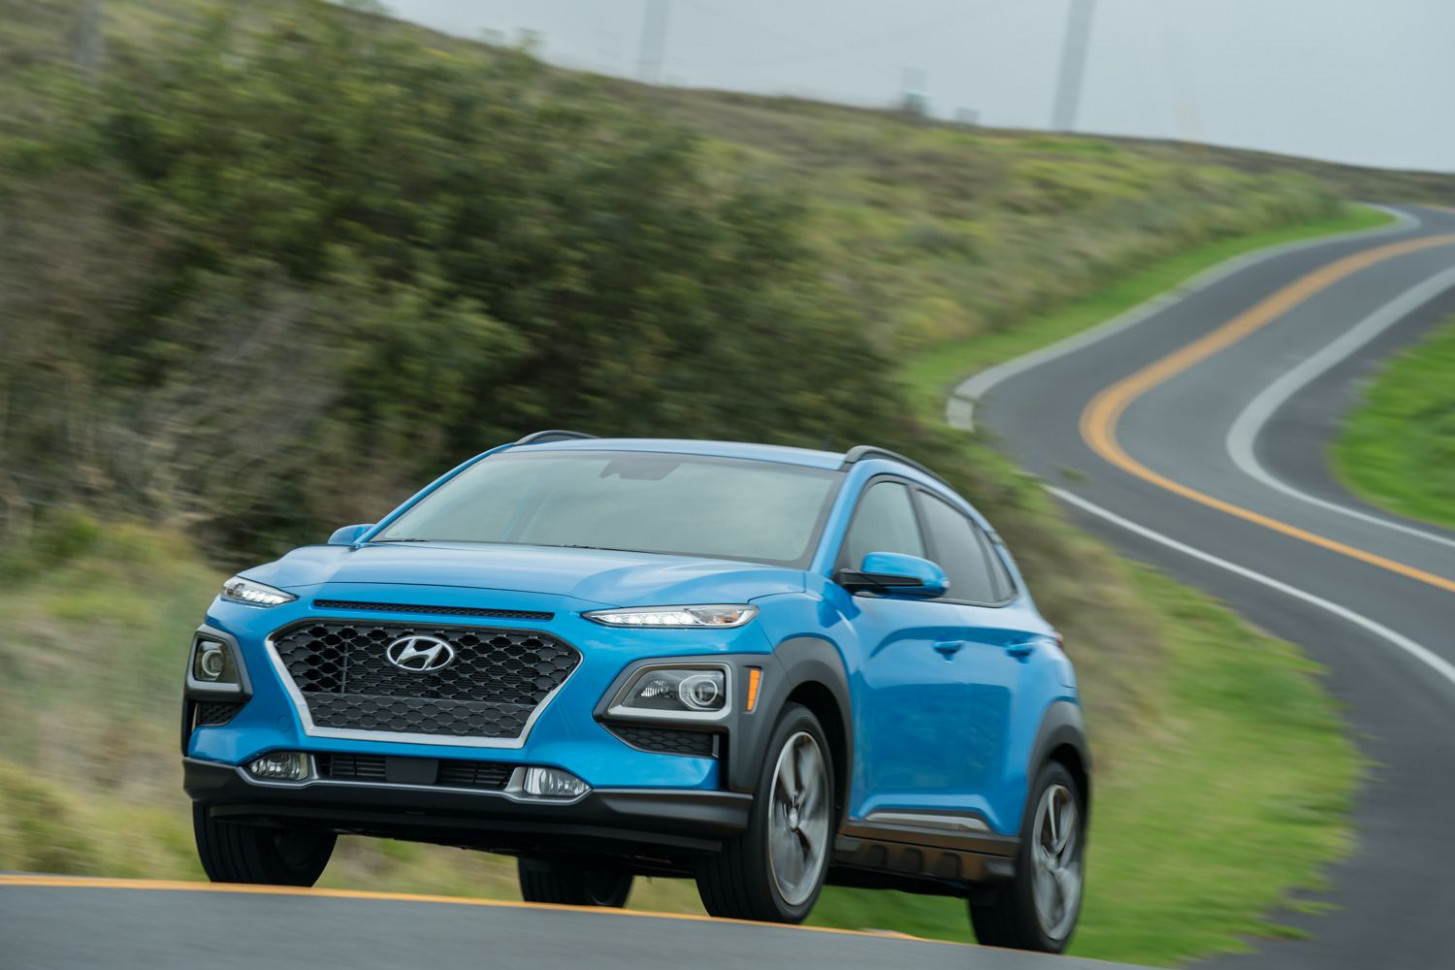 hyundai july 9 offers Picture 9*9 - hyundai july 9 ...